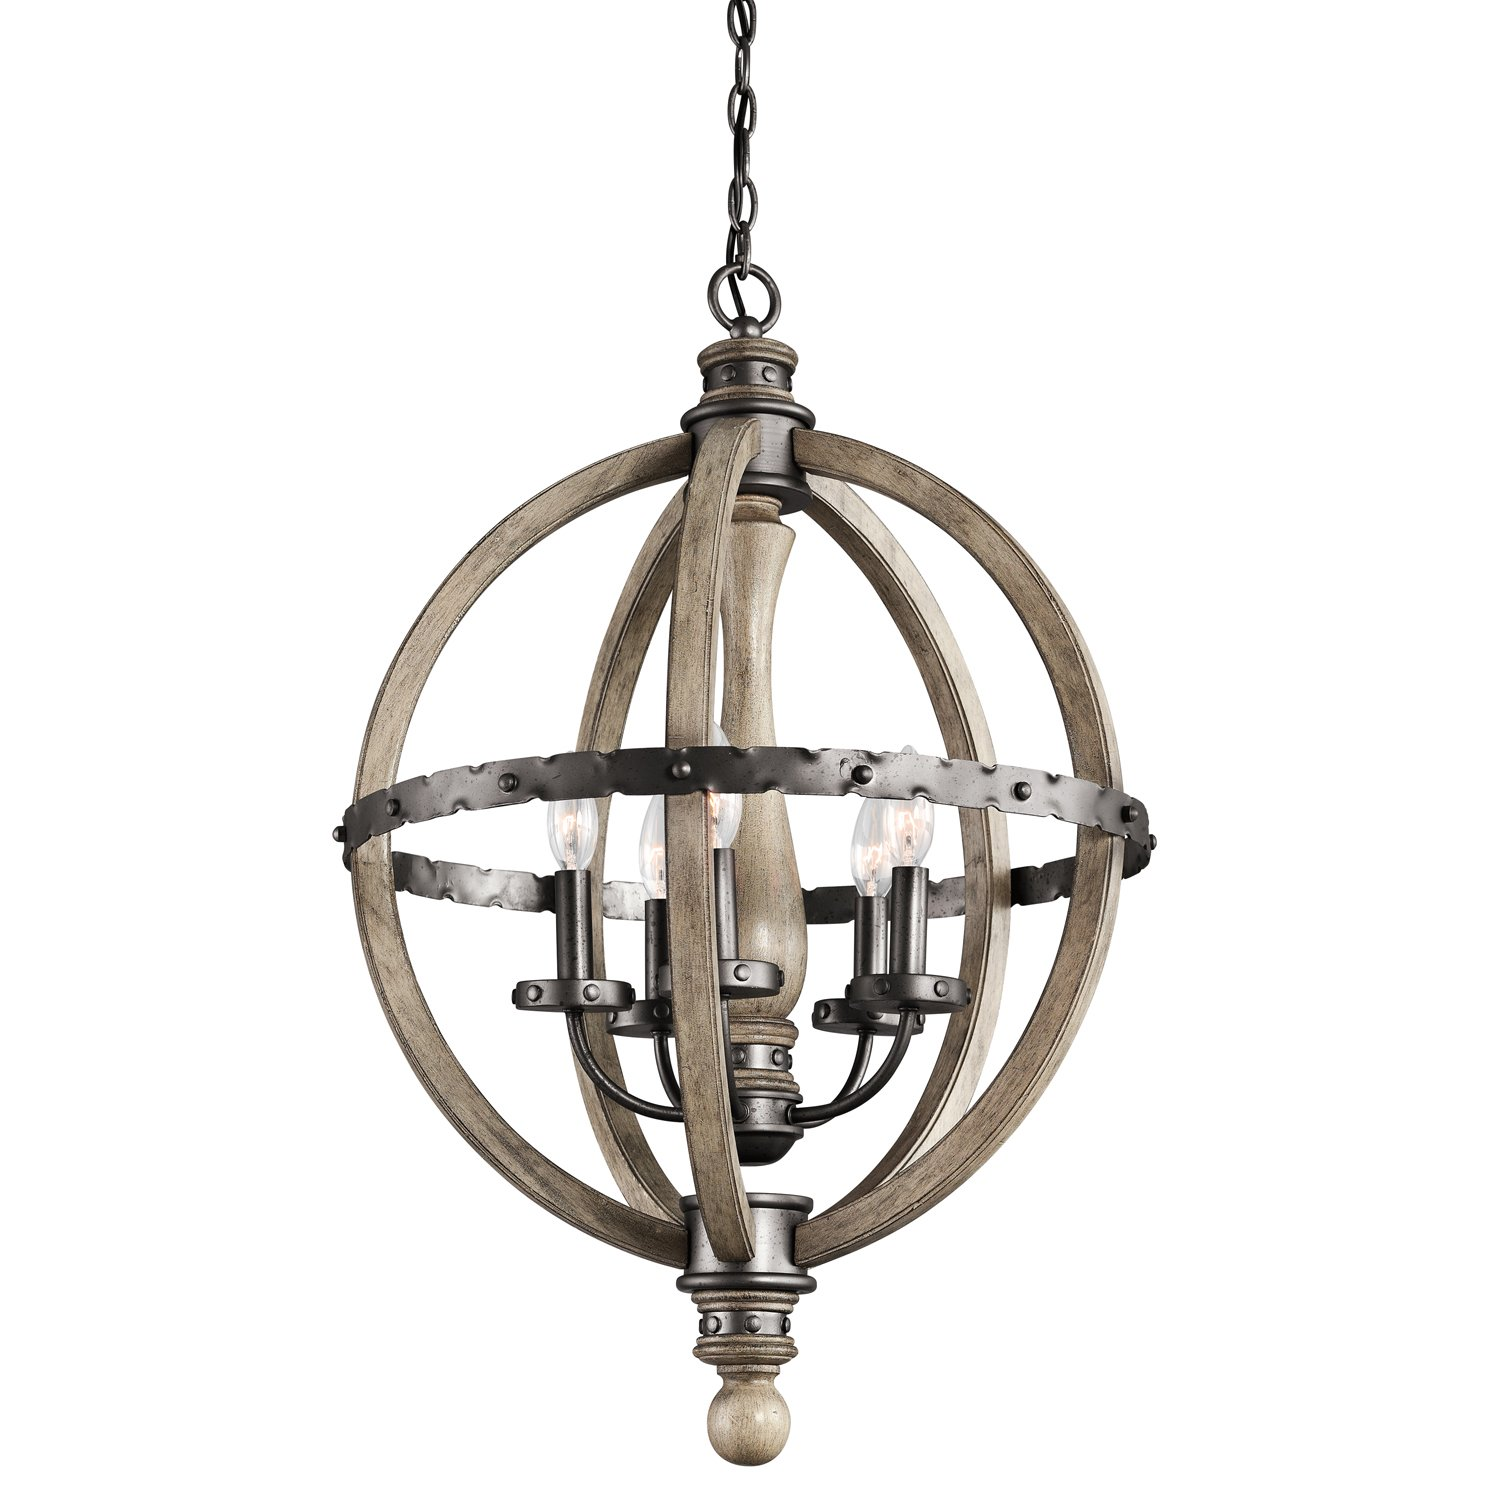 Kichler DAG Five Light Chandelier Ceiling Pendant Fixtures